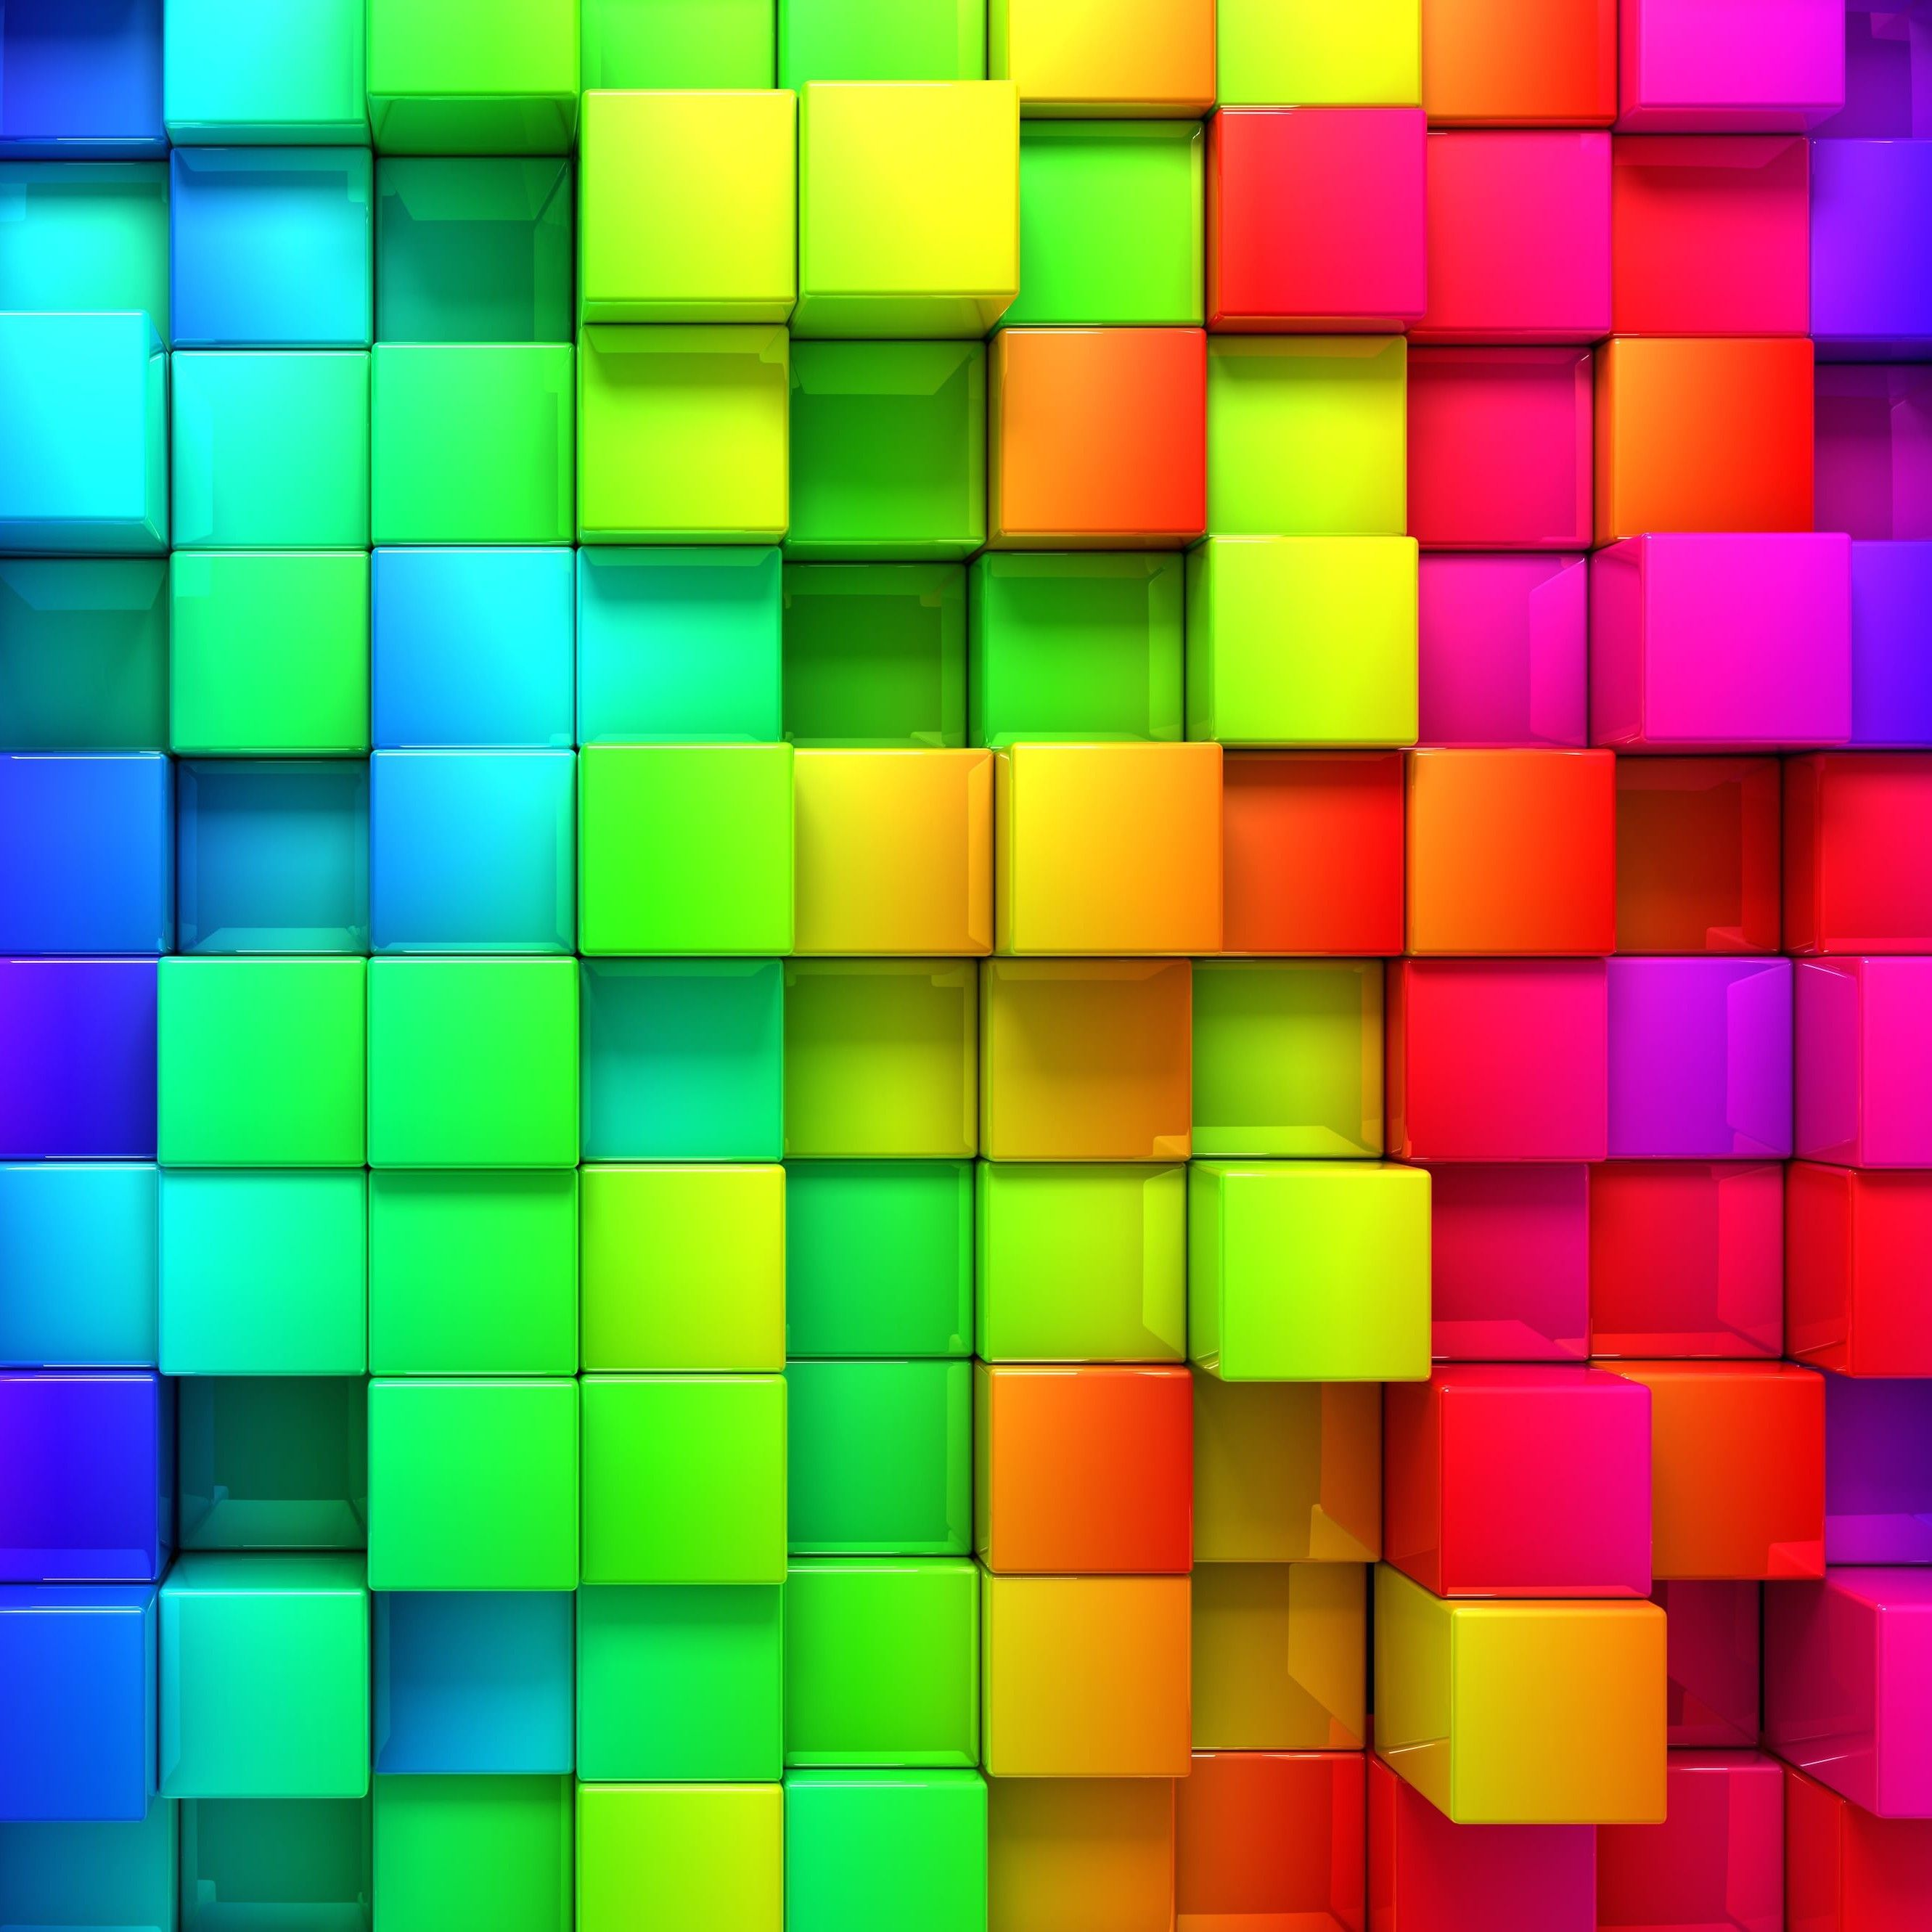 Cubic Rainbow Hd Wallpaper For Iphone 6 Plus Hdwallpapers Net